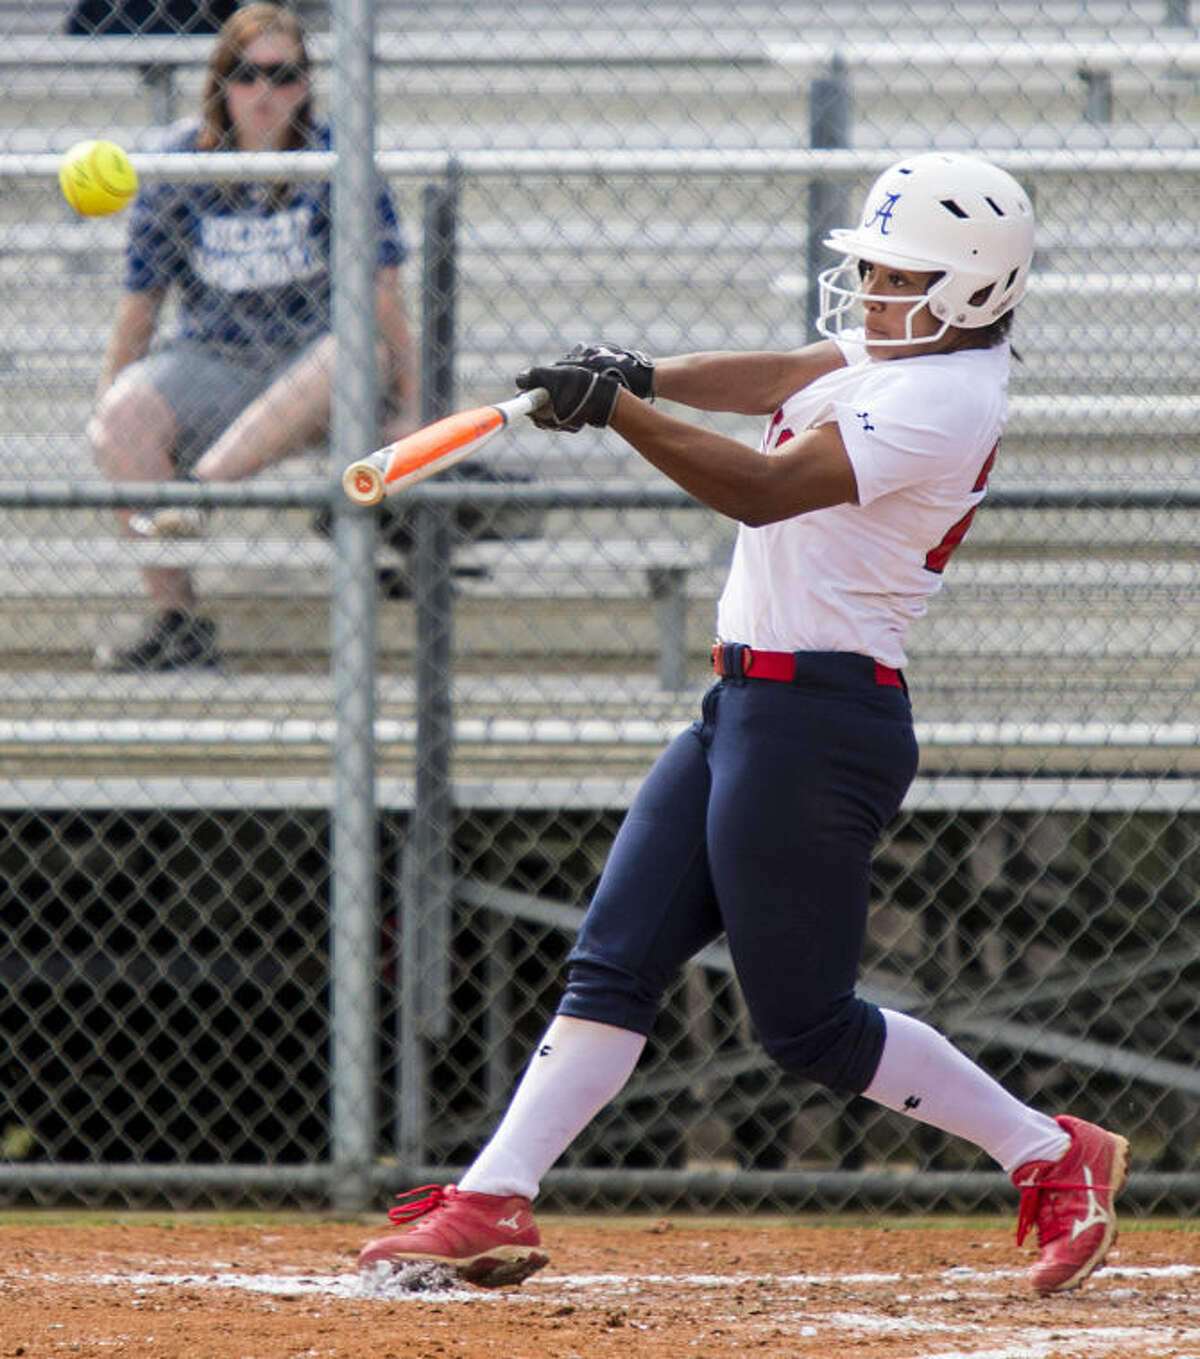 Atascocita's Kaitlyn Washington hits bringing in three baserunners during Atascocita's victory over Dekaney on March 11, 2014, at Atascocita High School. (Photo by ANDREW BUCKLEY/The Observer)